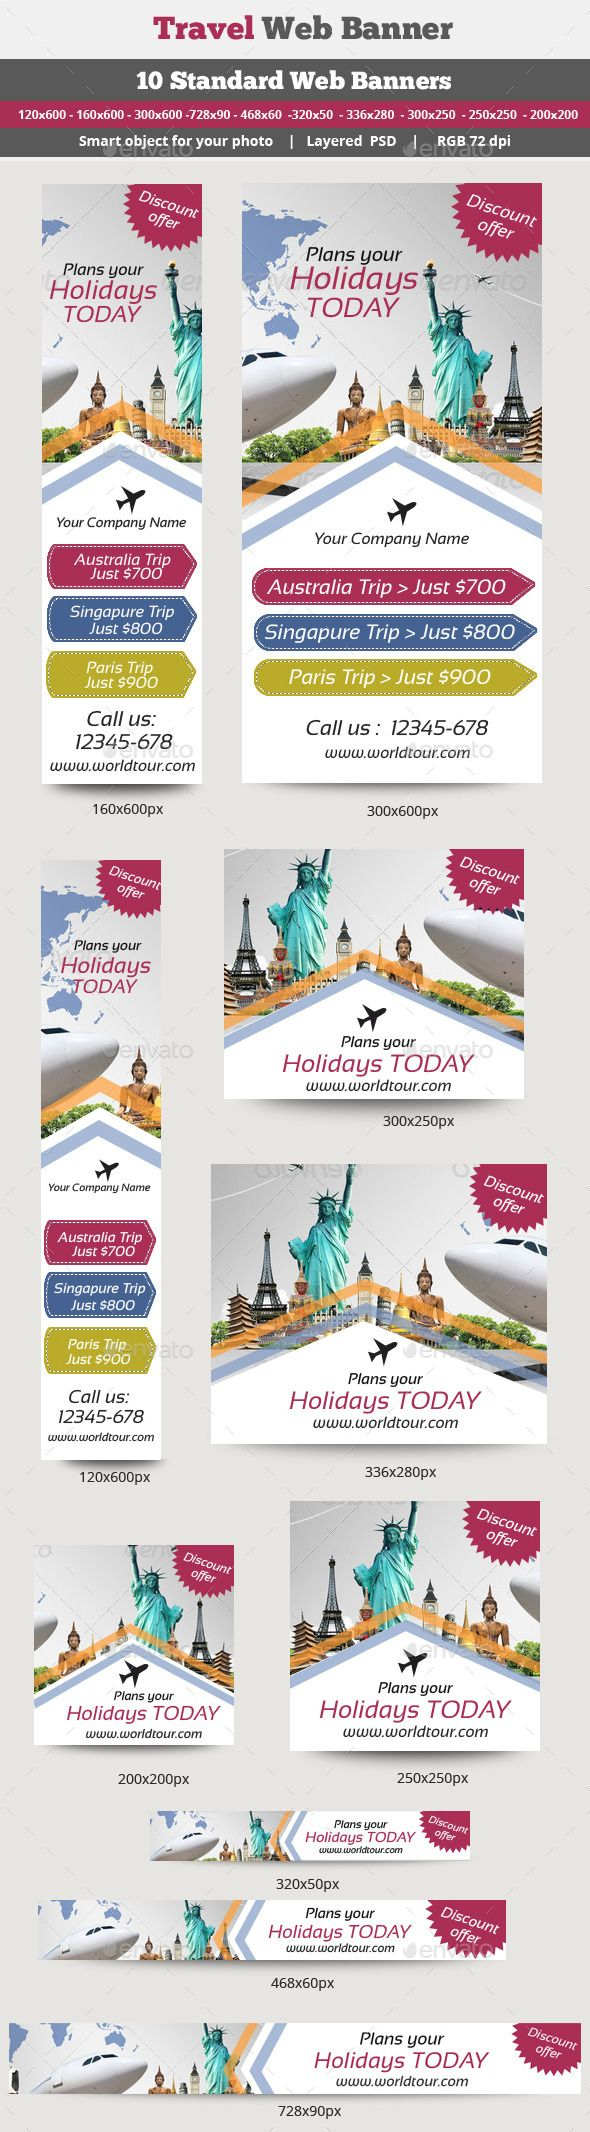 Travel Banner Template PSD | Buy and Download: http://graphicriver.net/item/travel-banner/8913261?WT.ac=category_thumb&WT.z_author=surajkhatri&ref=ksioks